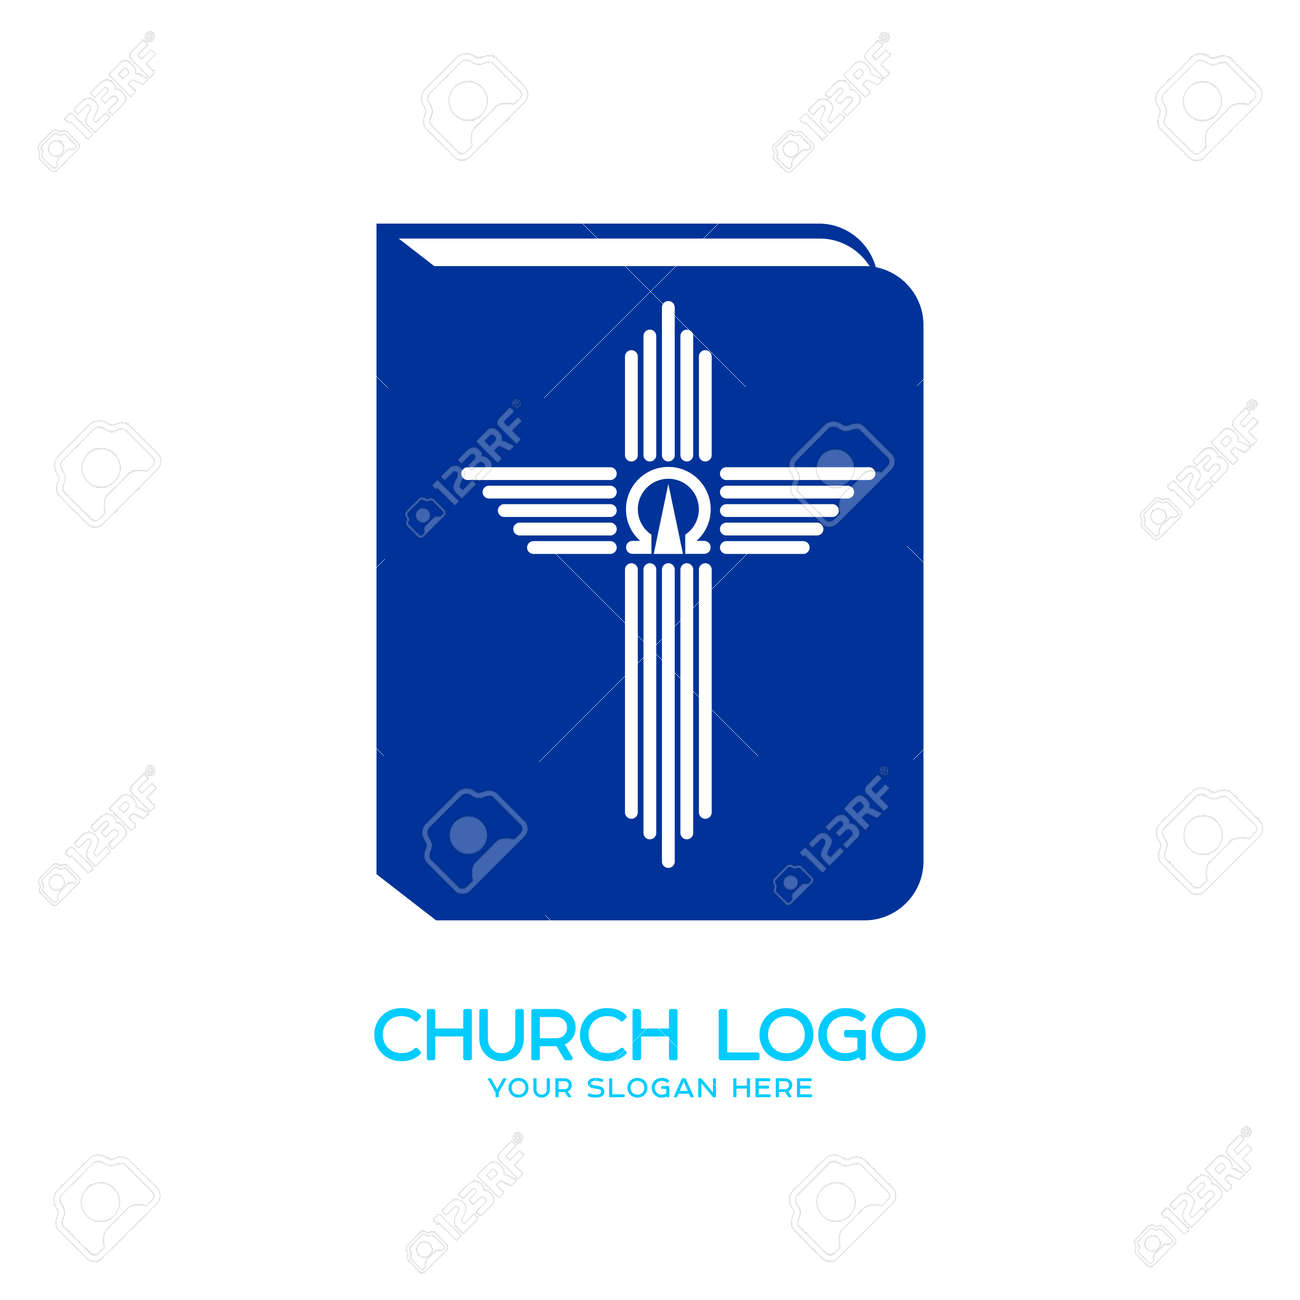 Church Logo Christian Symbols The Bible The Cross And The